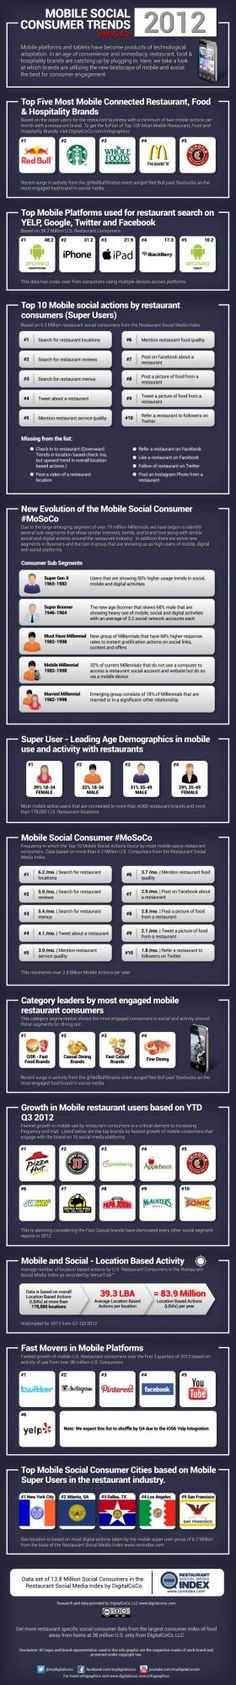 Infographic: 2012 mobile social consumer trends